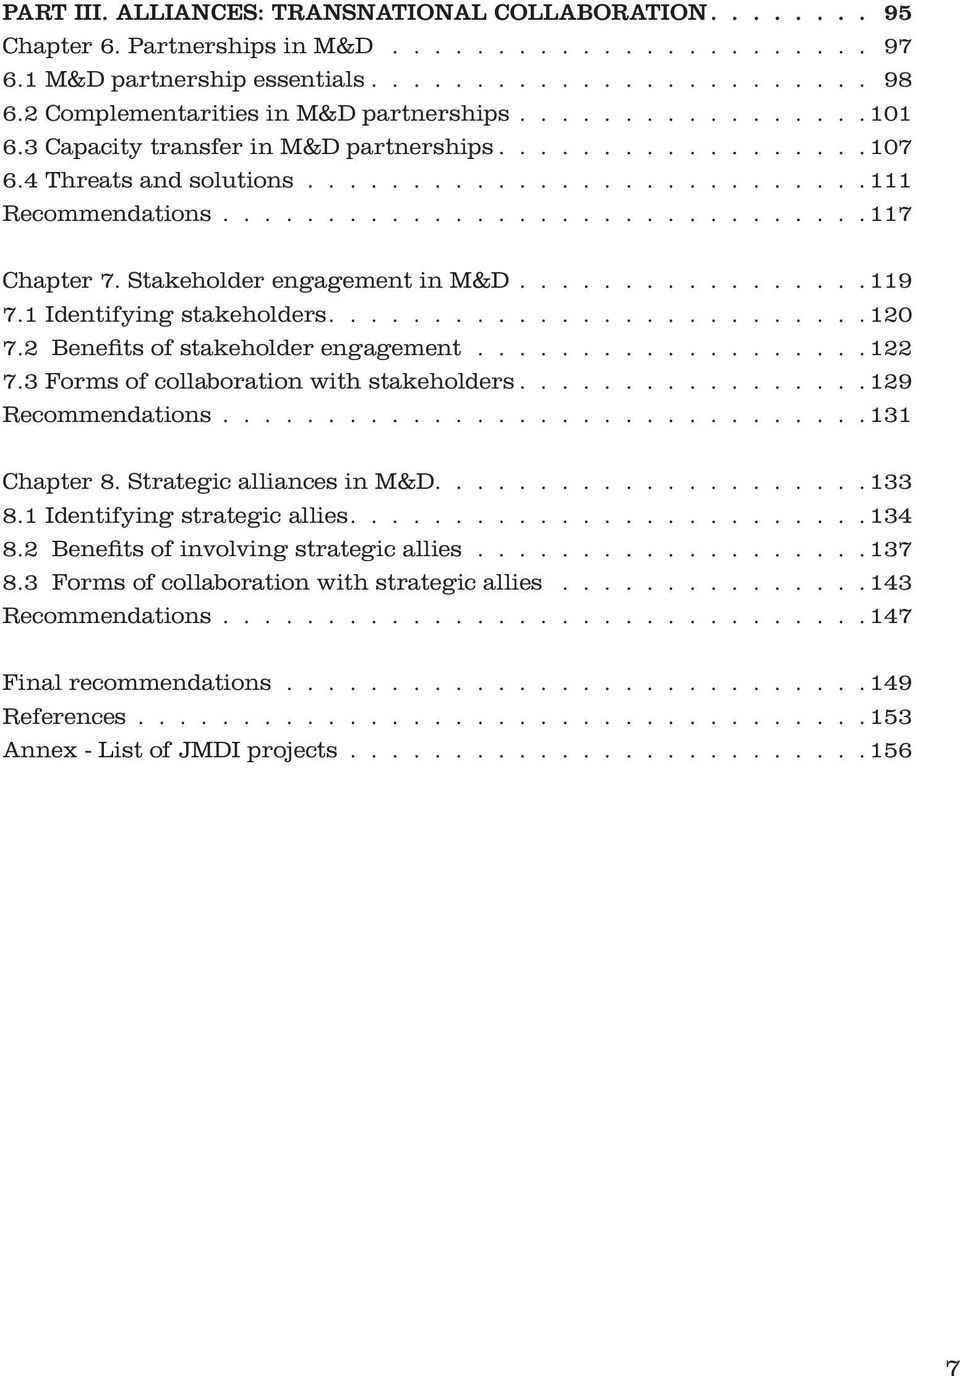 2 Benefits of stakeholder engagement 122 7.3 Forms of collaboration with stakeholders 129 Recommendations 131 Chapter 8. Strategic alliances in M&D 133 8.